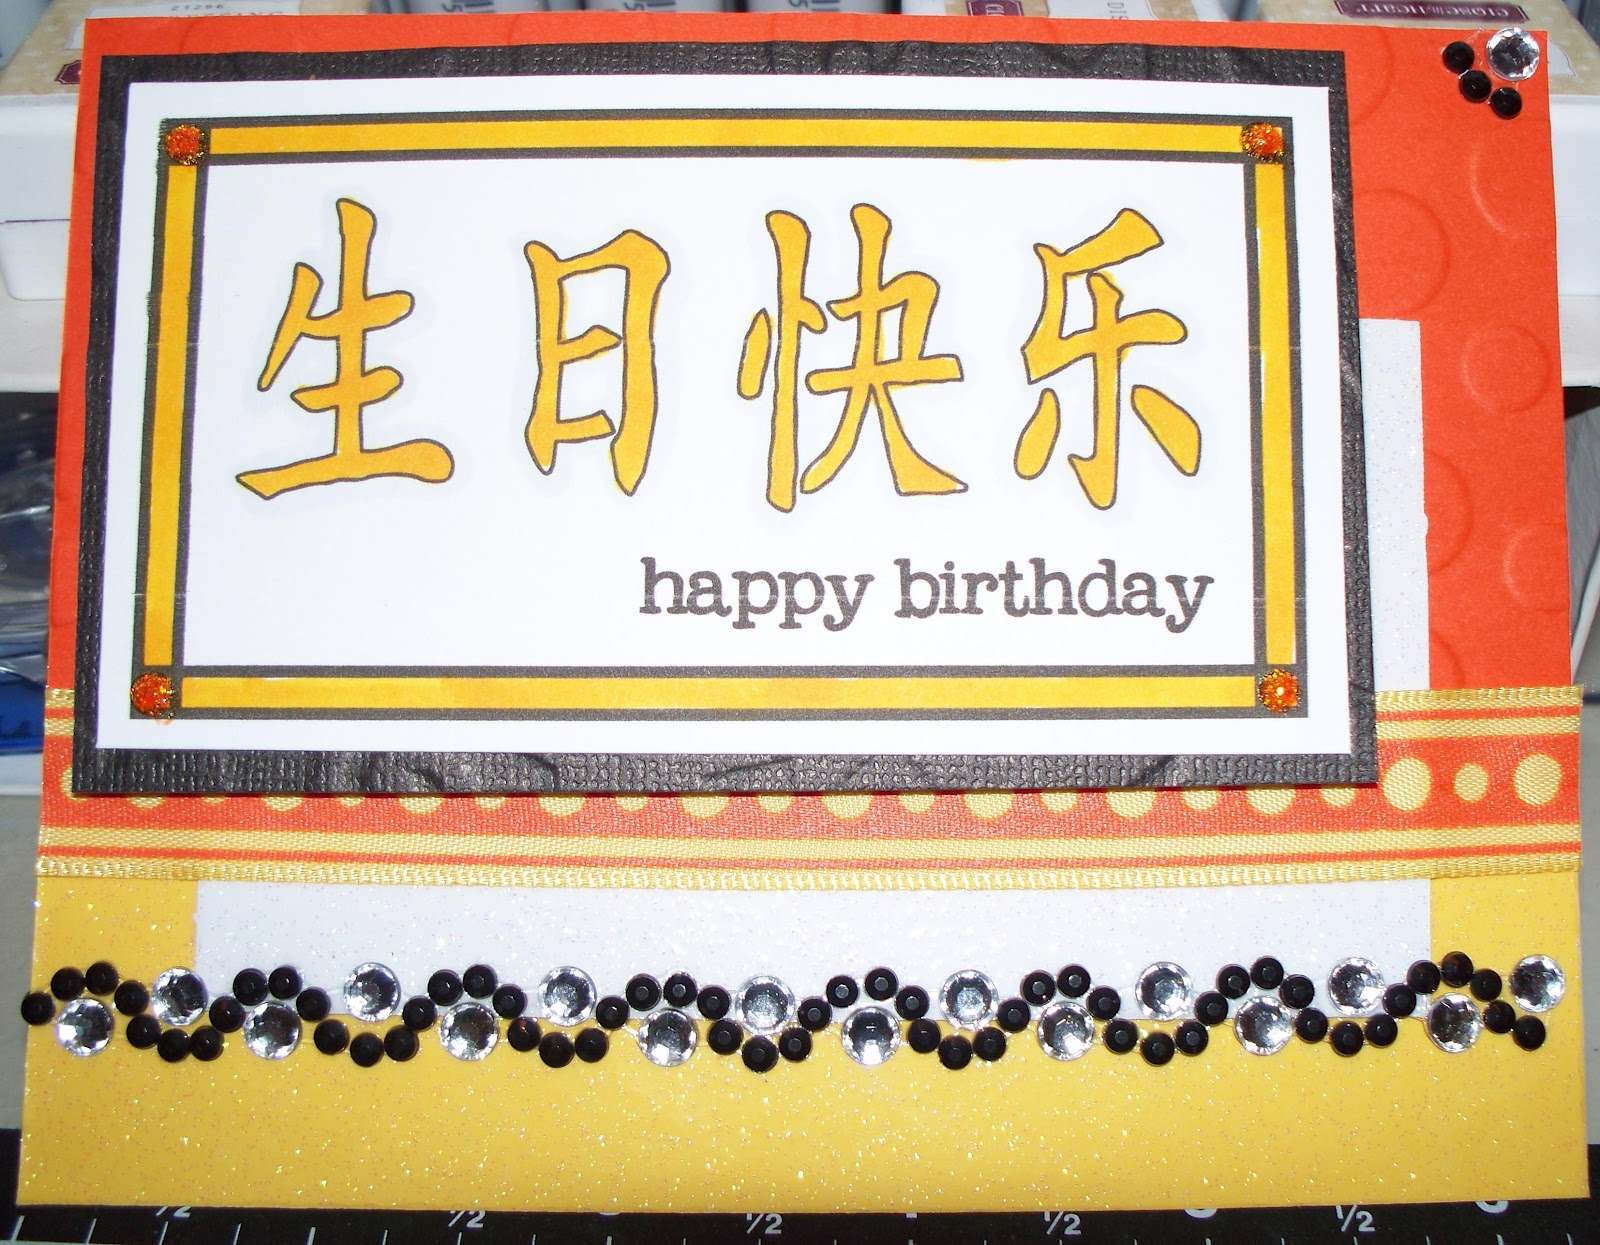 Melissas thoughts on paper happy birthday chinese characters happy birthday image by fawn palmer squigglefly copics yr68 vr09 y19 c0 yellow glitter cardstock yellow and dark pink cardstock buycottarizona Gallery